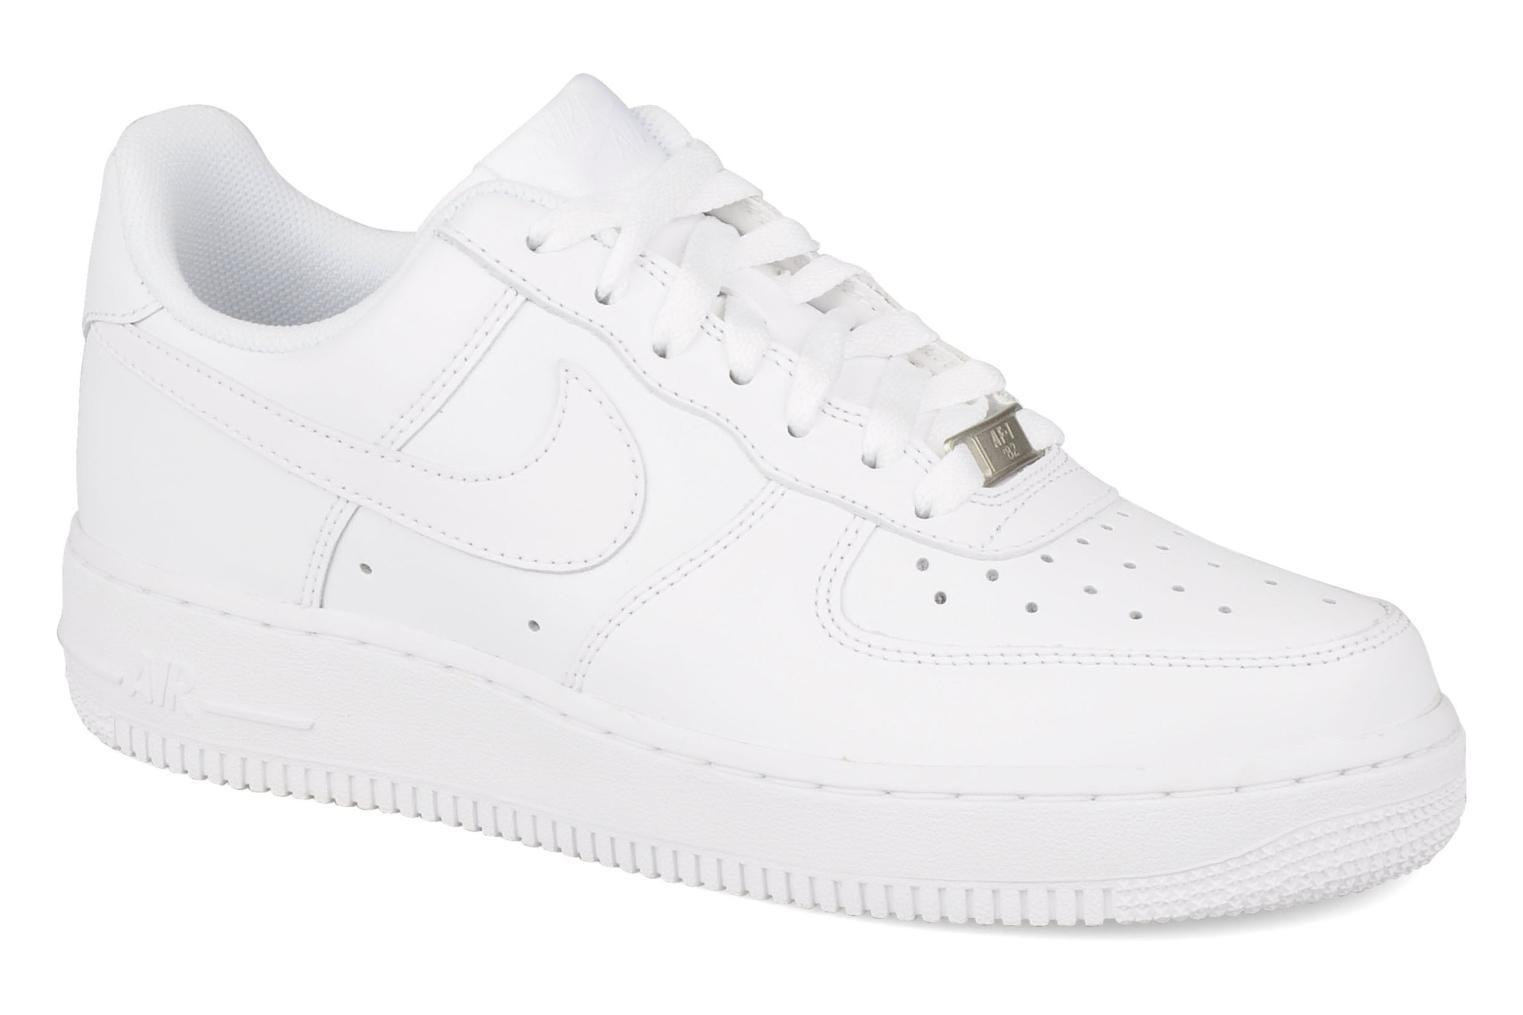 new arrival 763d2 6dcef tenis nike air force de mujer